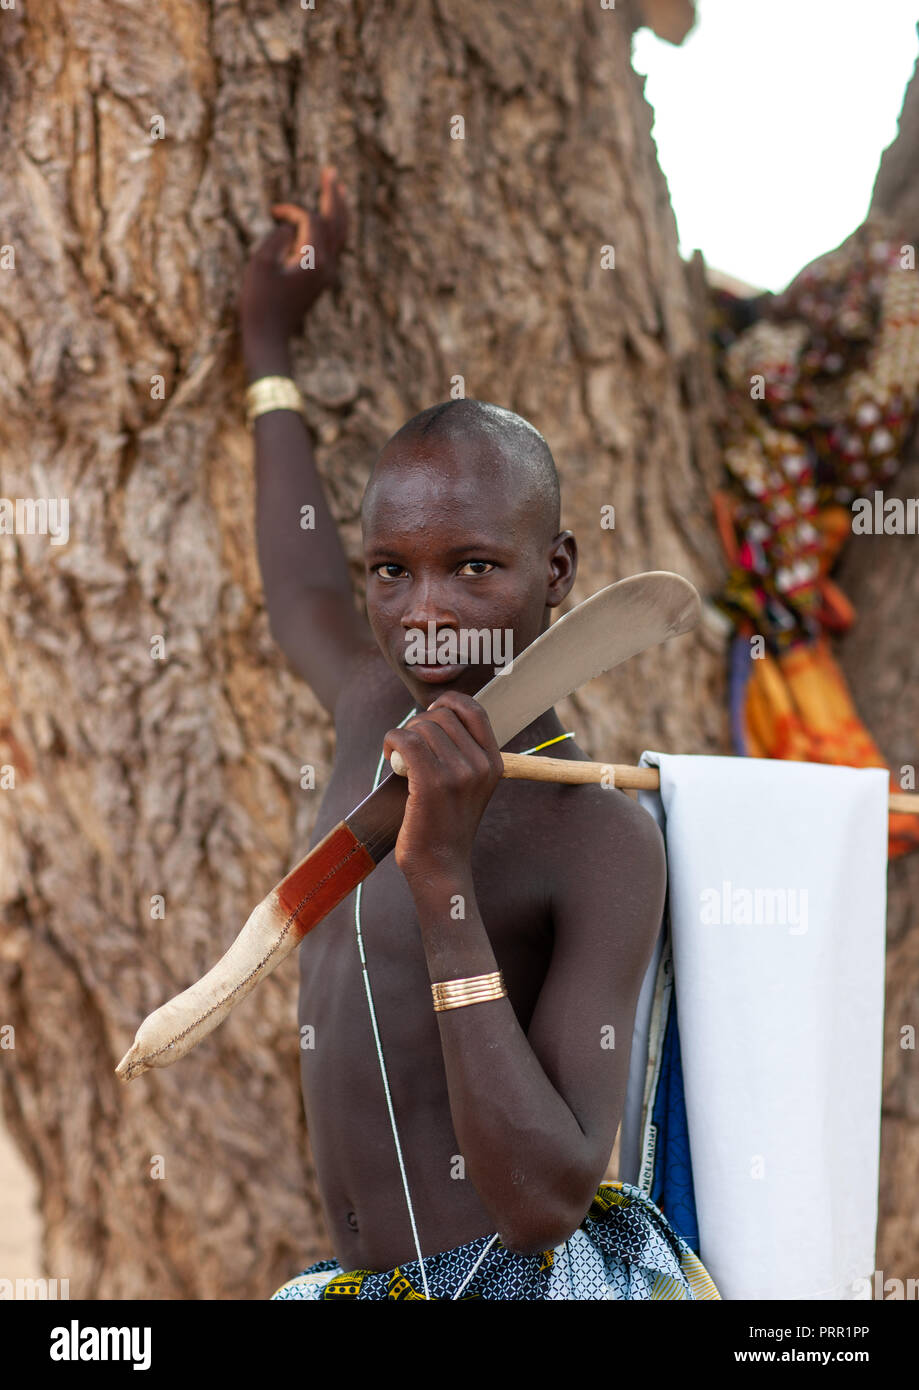 Portrait of a Mucubal tribe man with his machete, Namibe Province, Virei, Angola Stock Photo